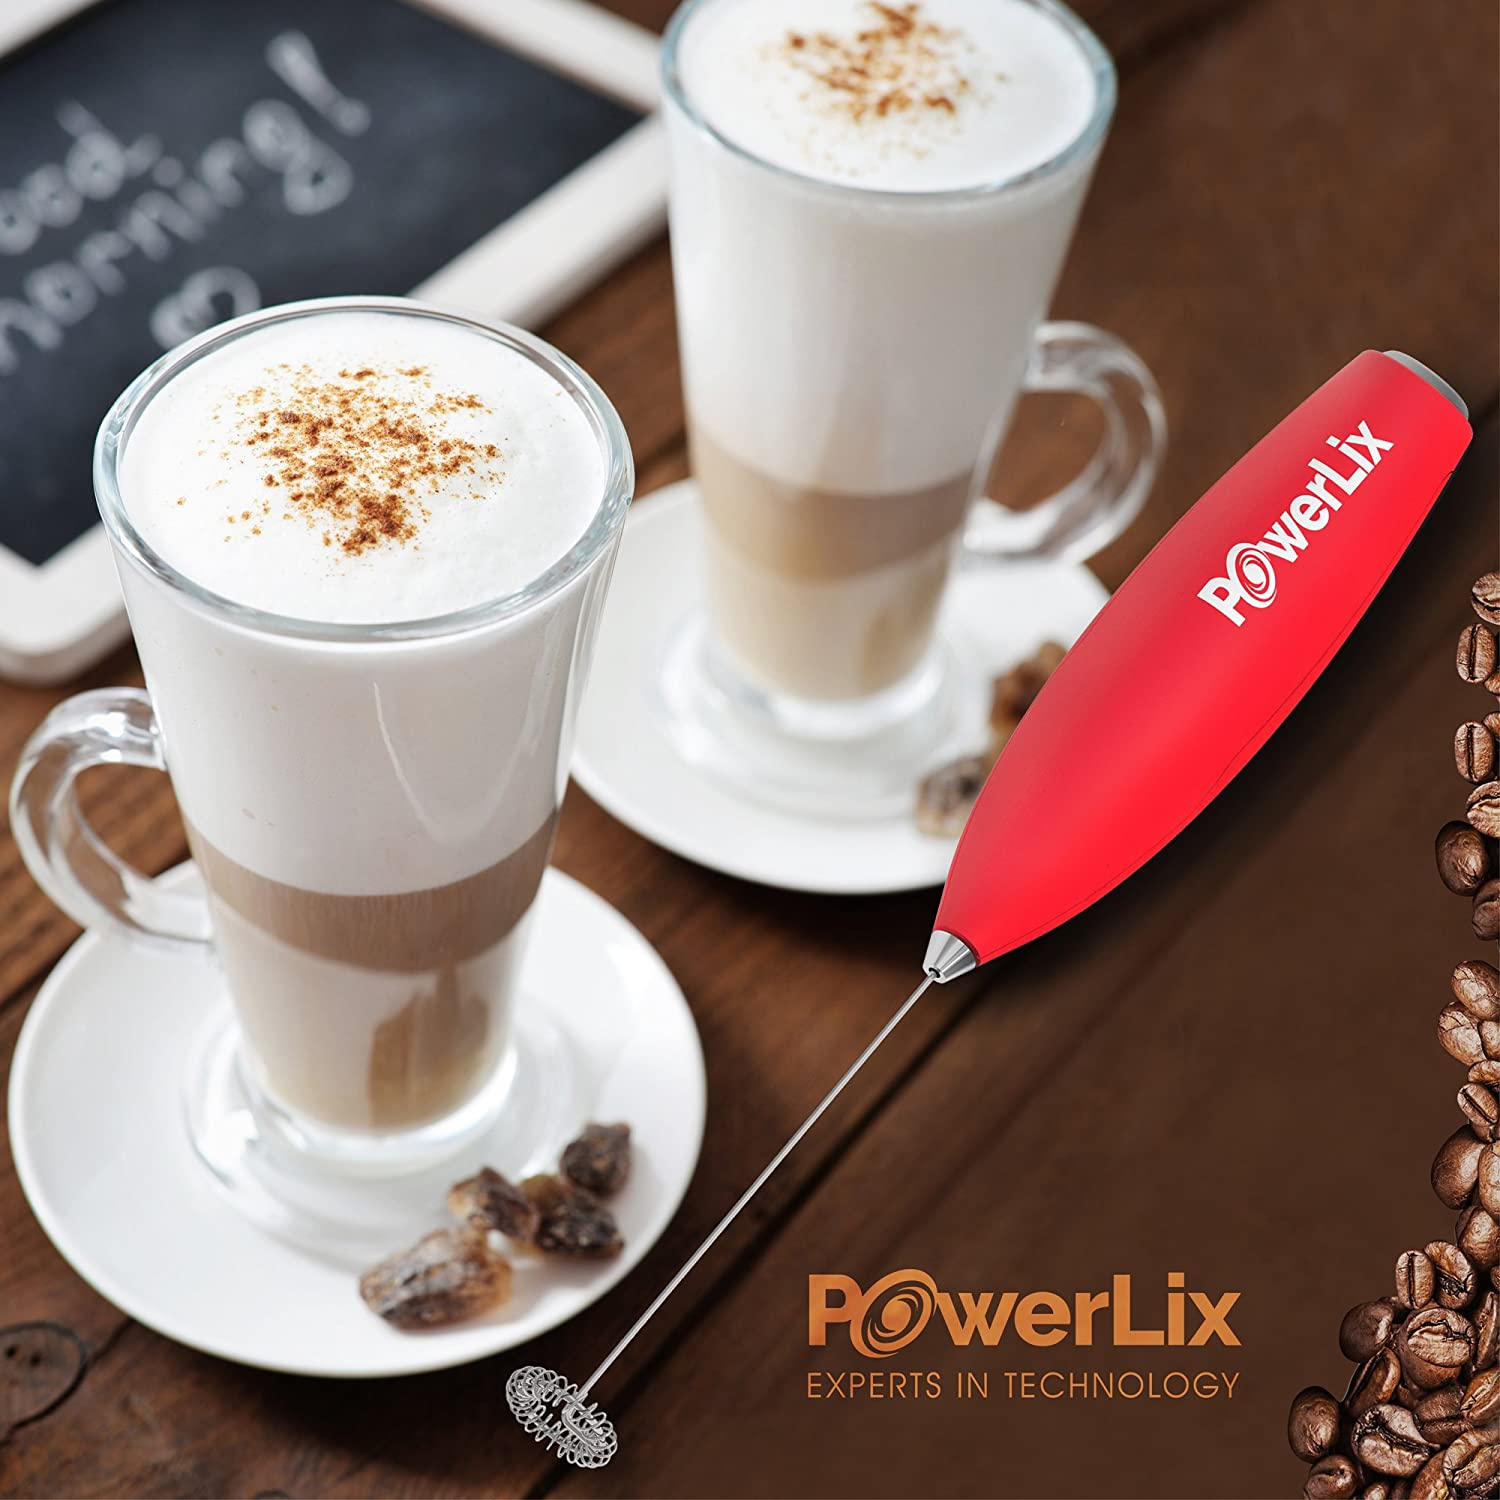 Amazon.com: PowerLix Milk Frother Handheld Battery Operated ...